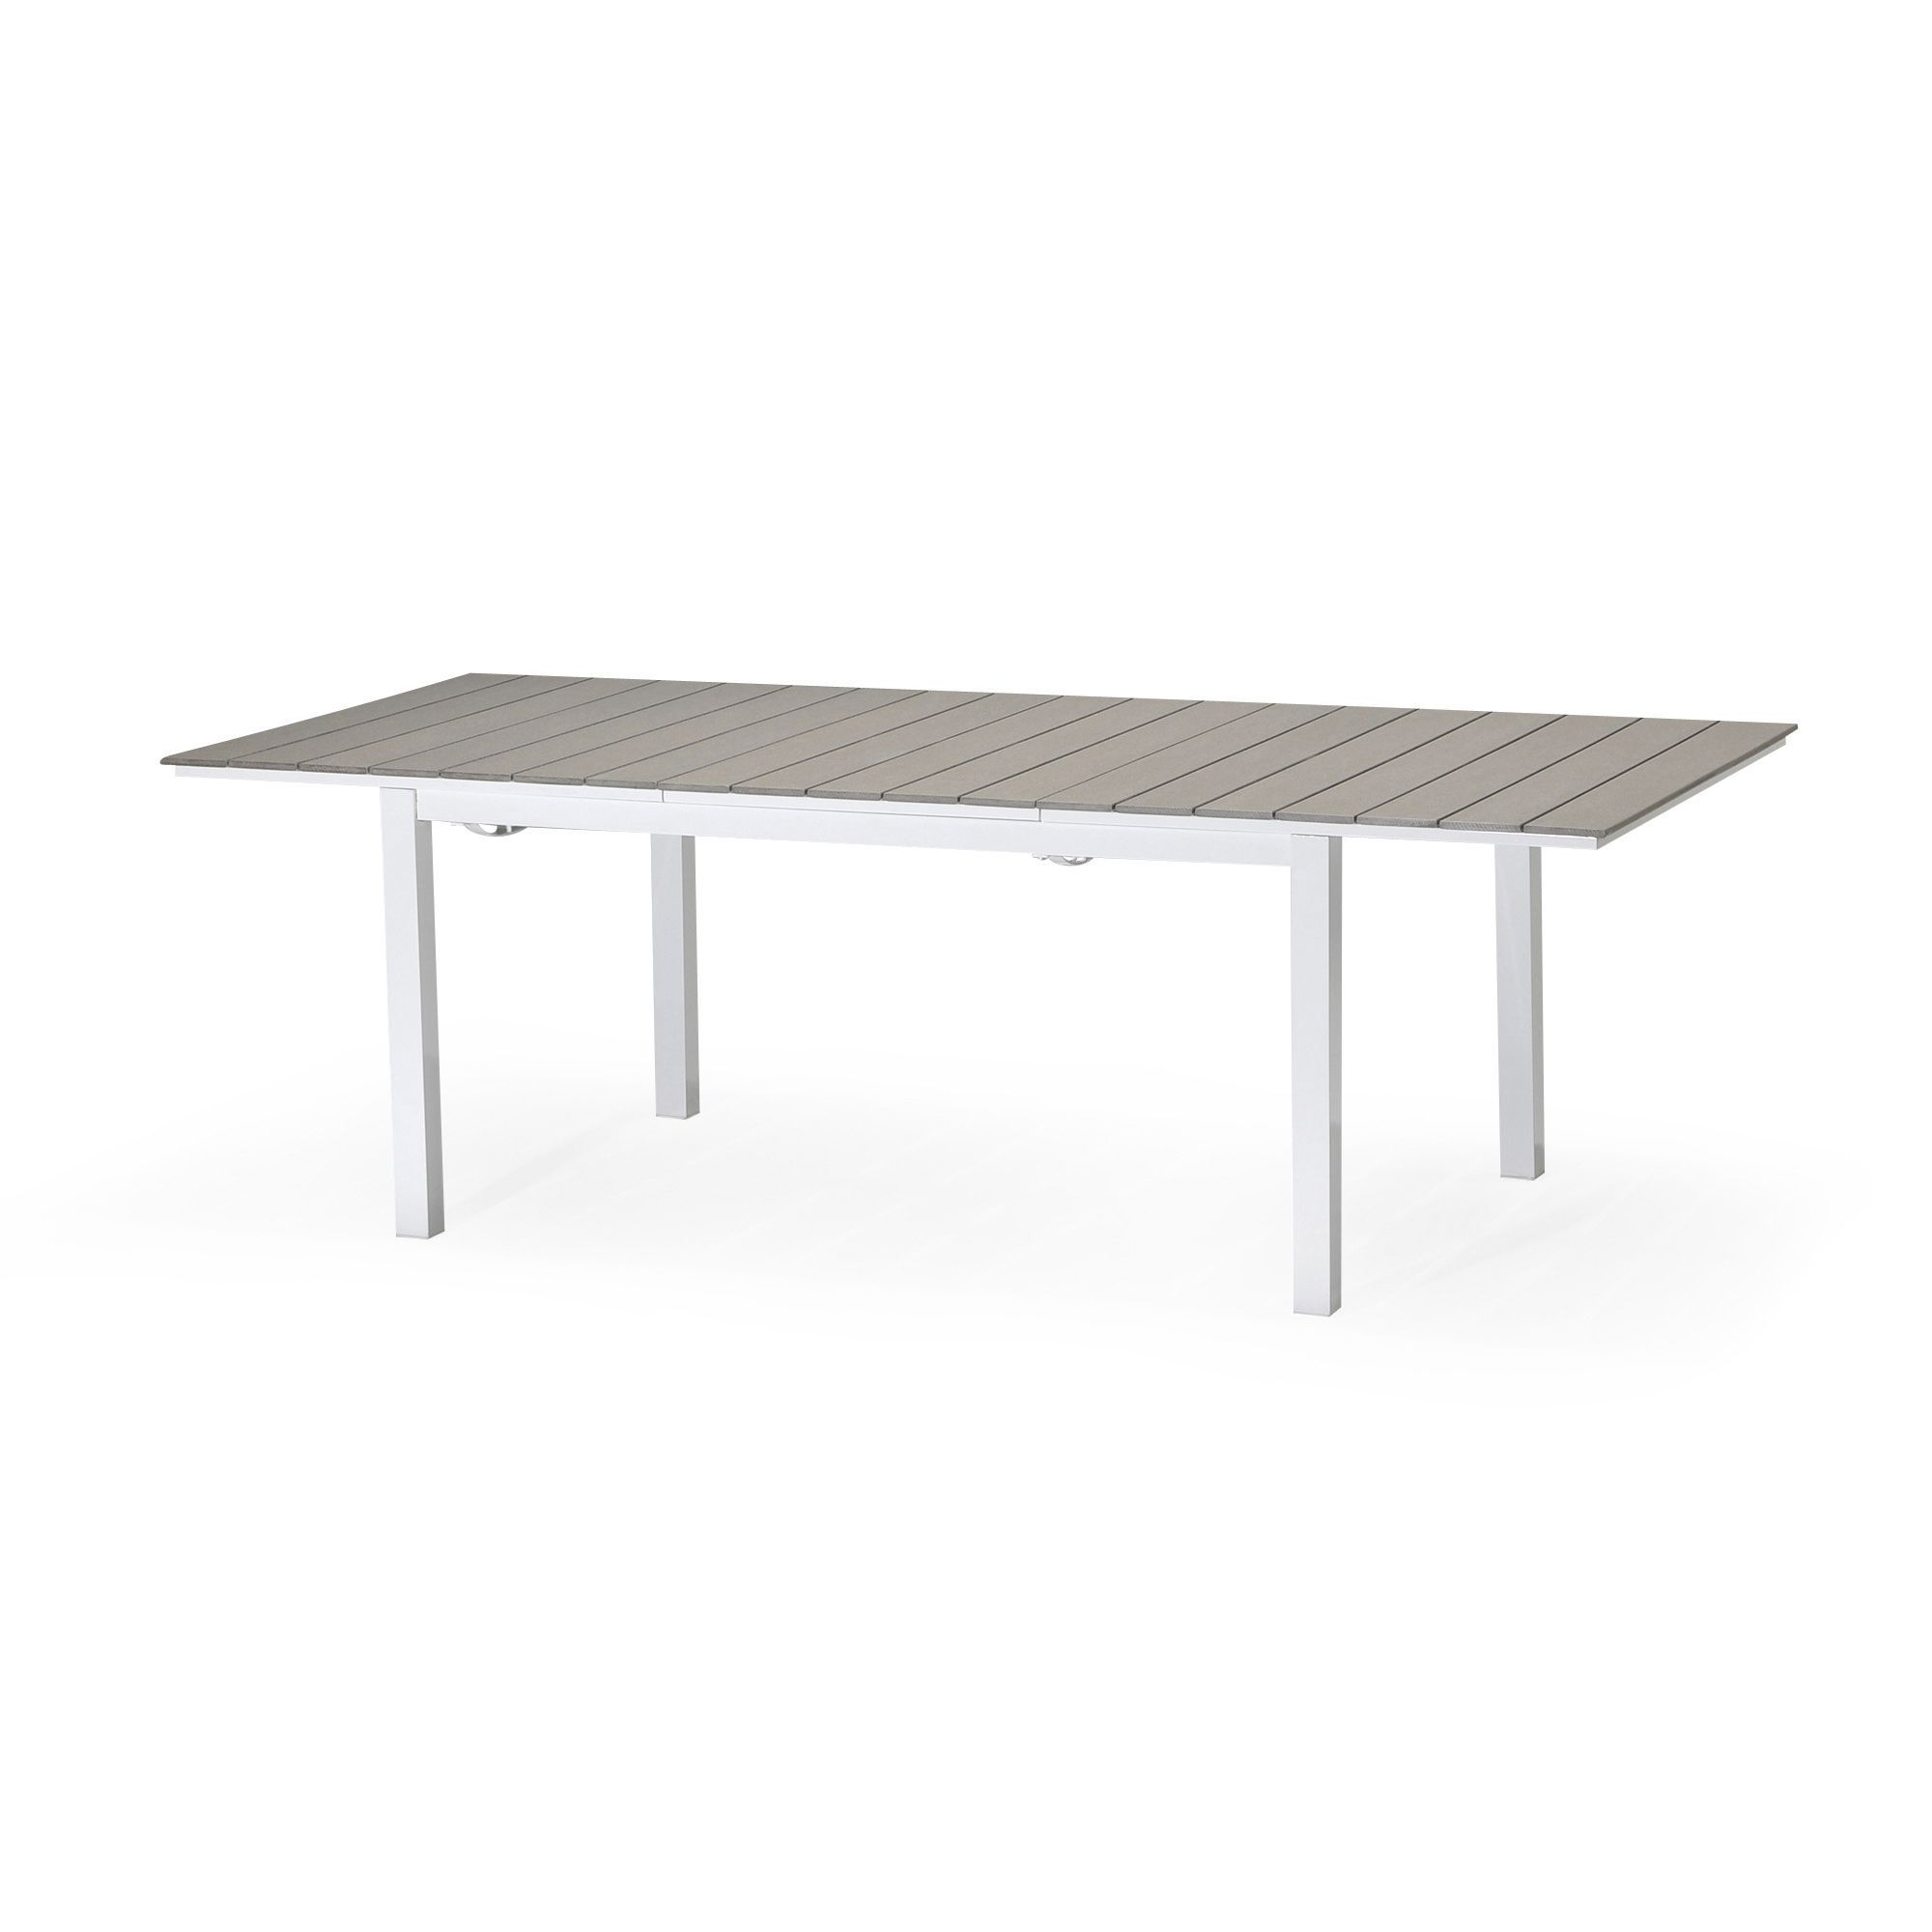 Table de jardin extensible grise Gris sable - Salerno ...